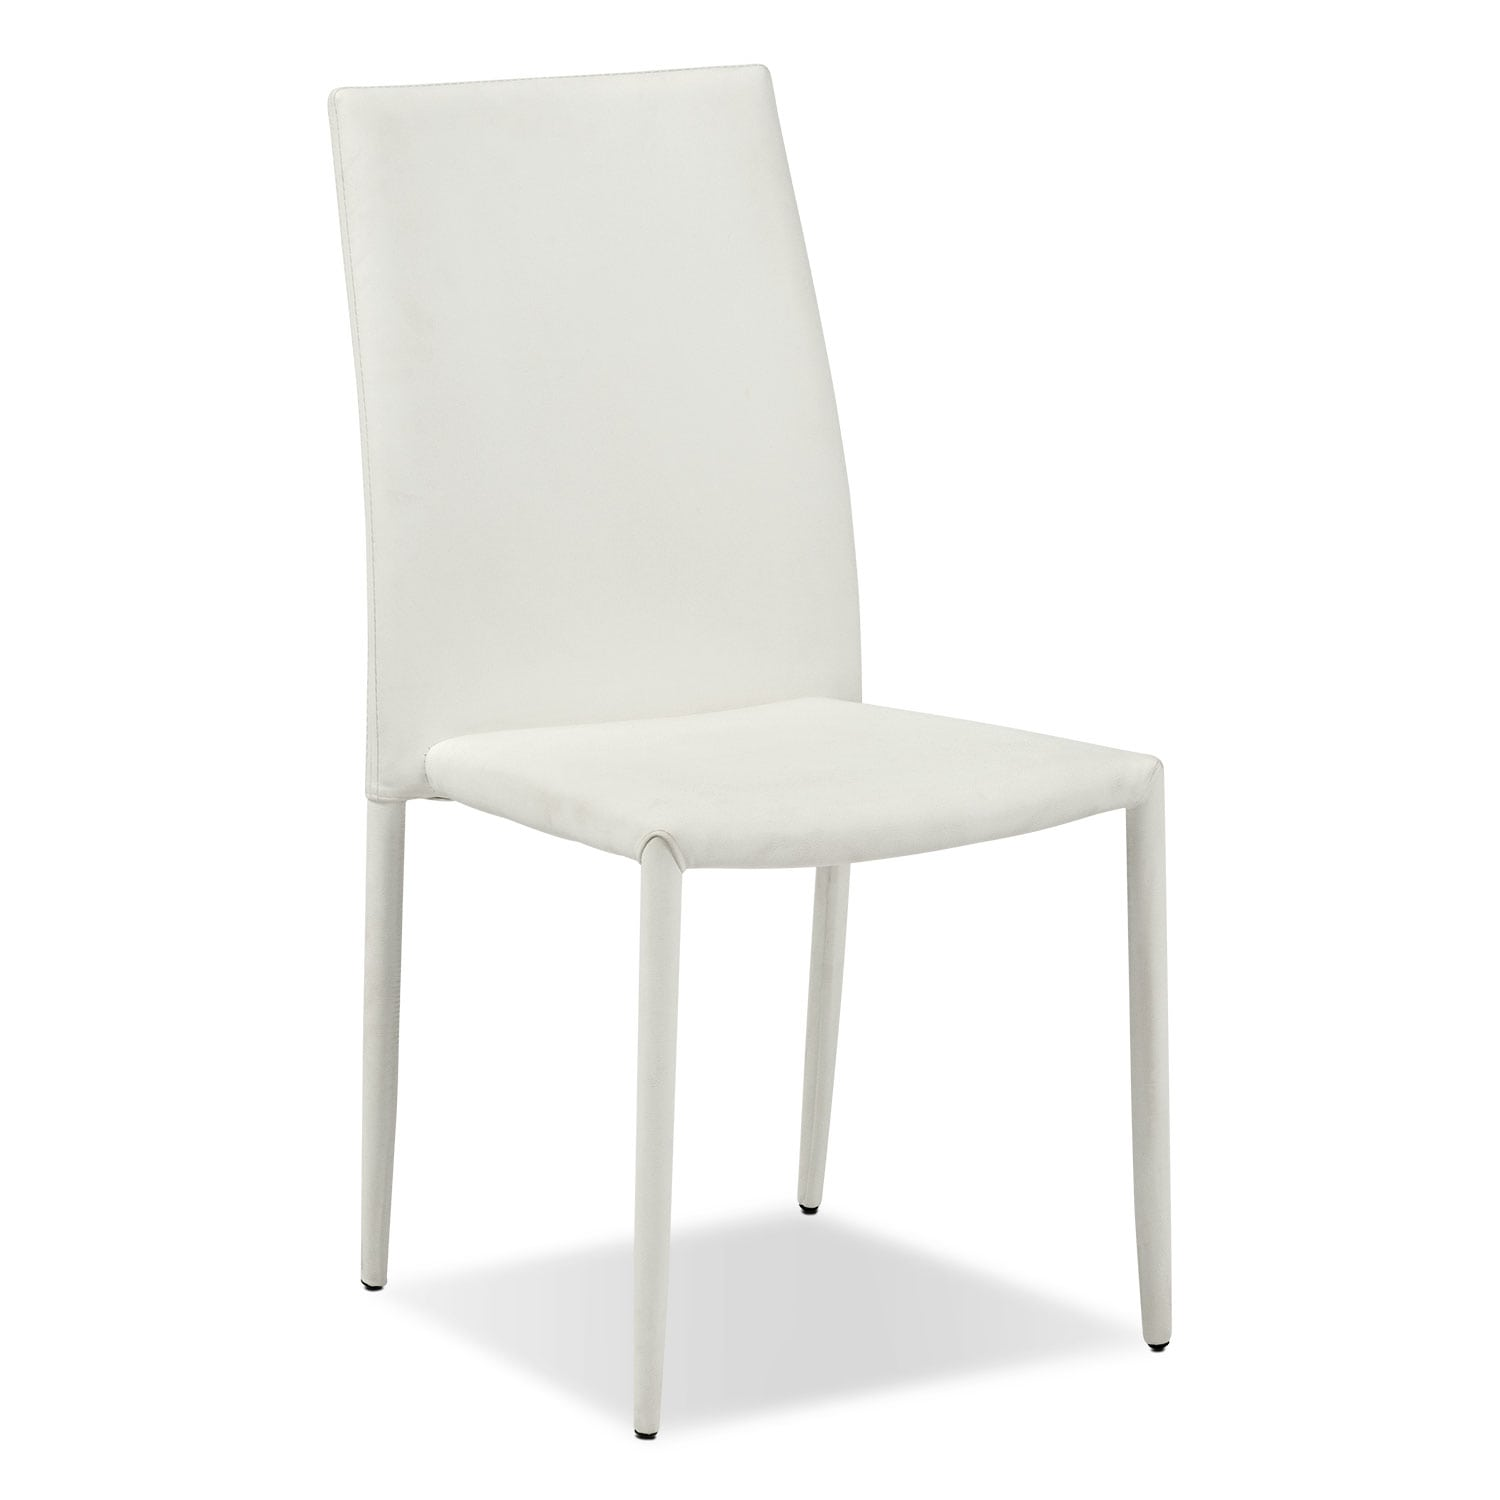 Quattro Side Chair - White